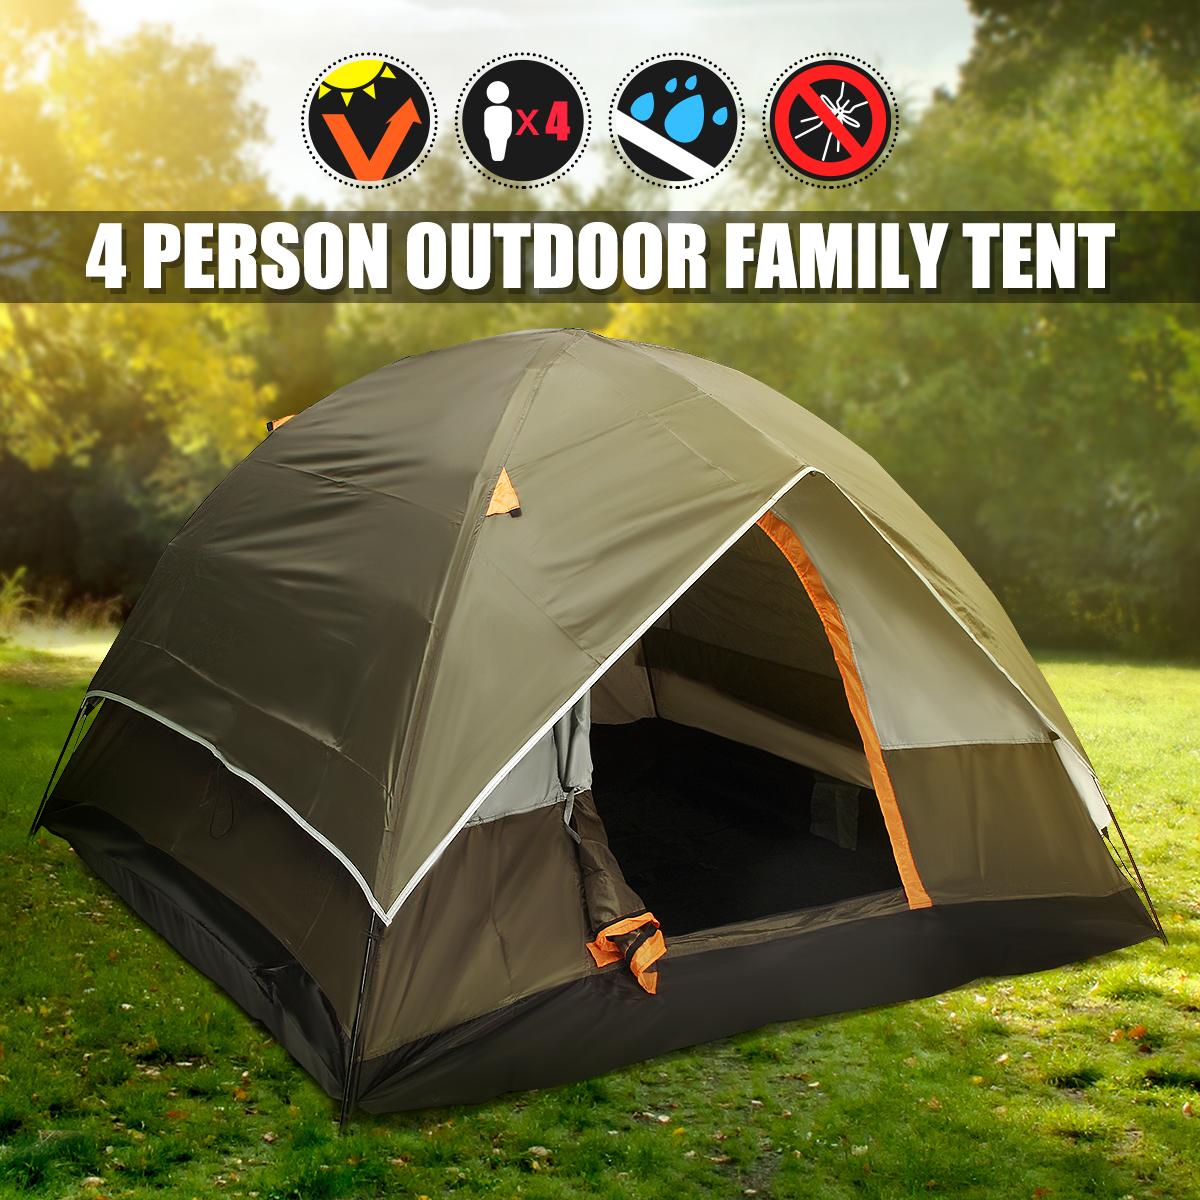 4 Person Double layer Tents Waterproof UV Weather Resistant Family Outdoor Fishing Hunting Party Camping Tent Beach Travel